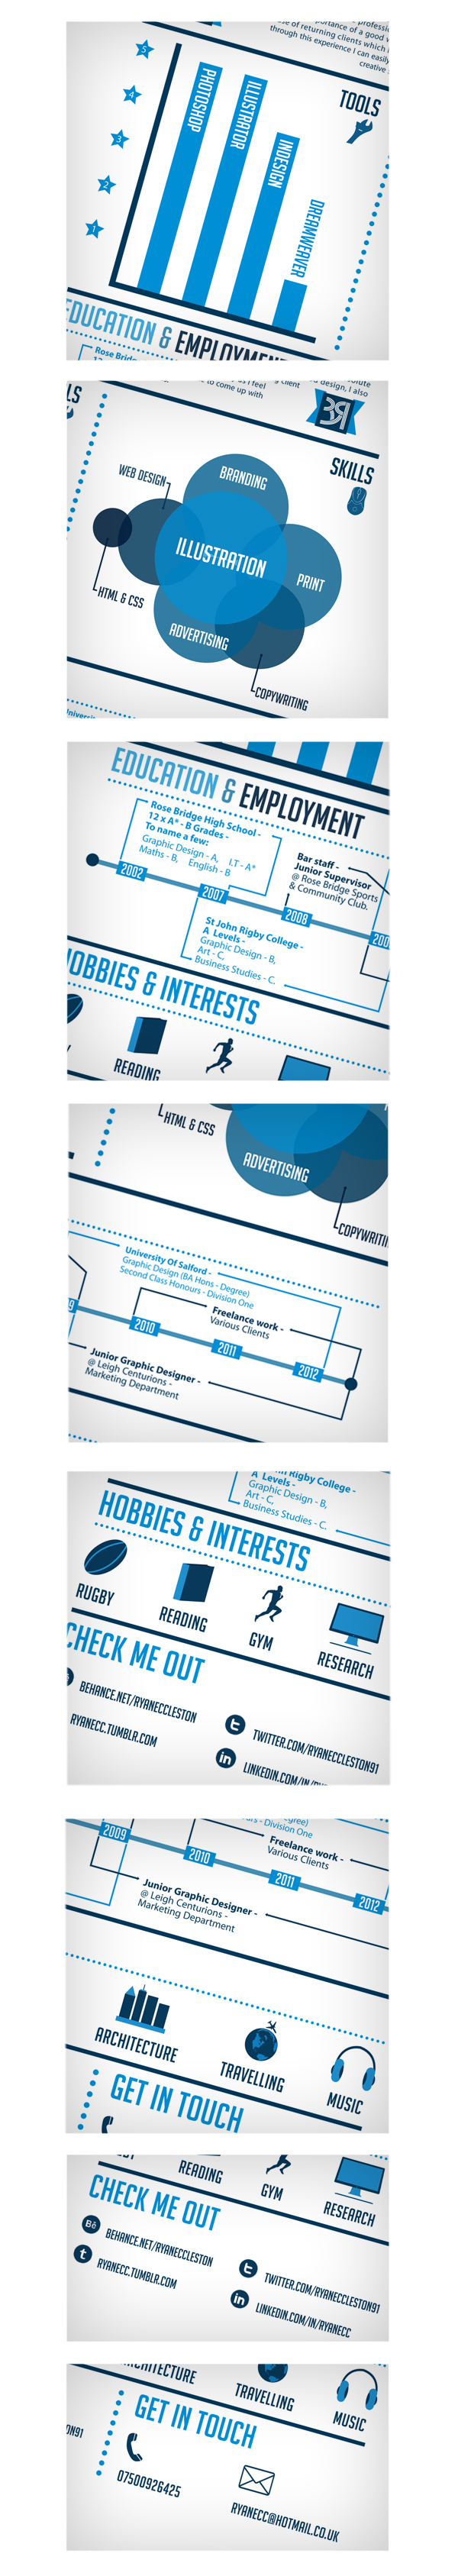 Curriculum Vitae & Web Design By Ryan Eccleston Via Behance